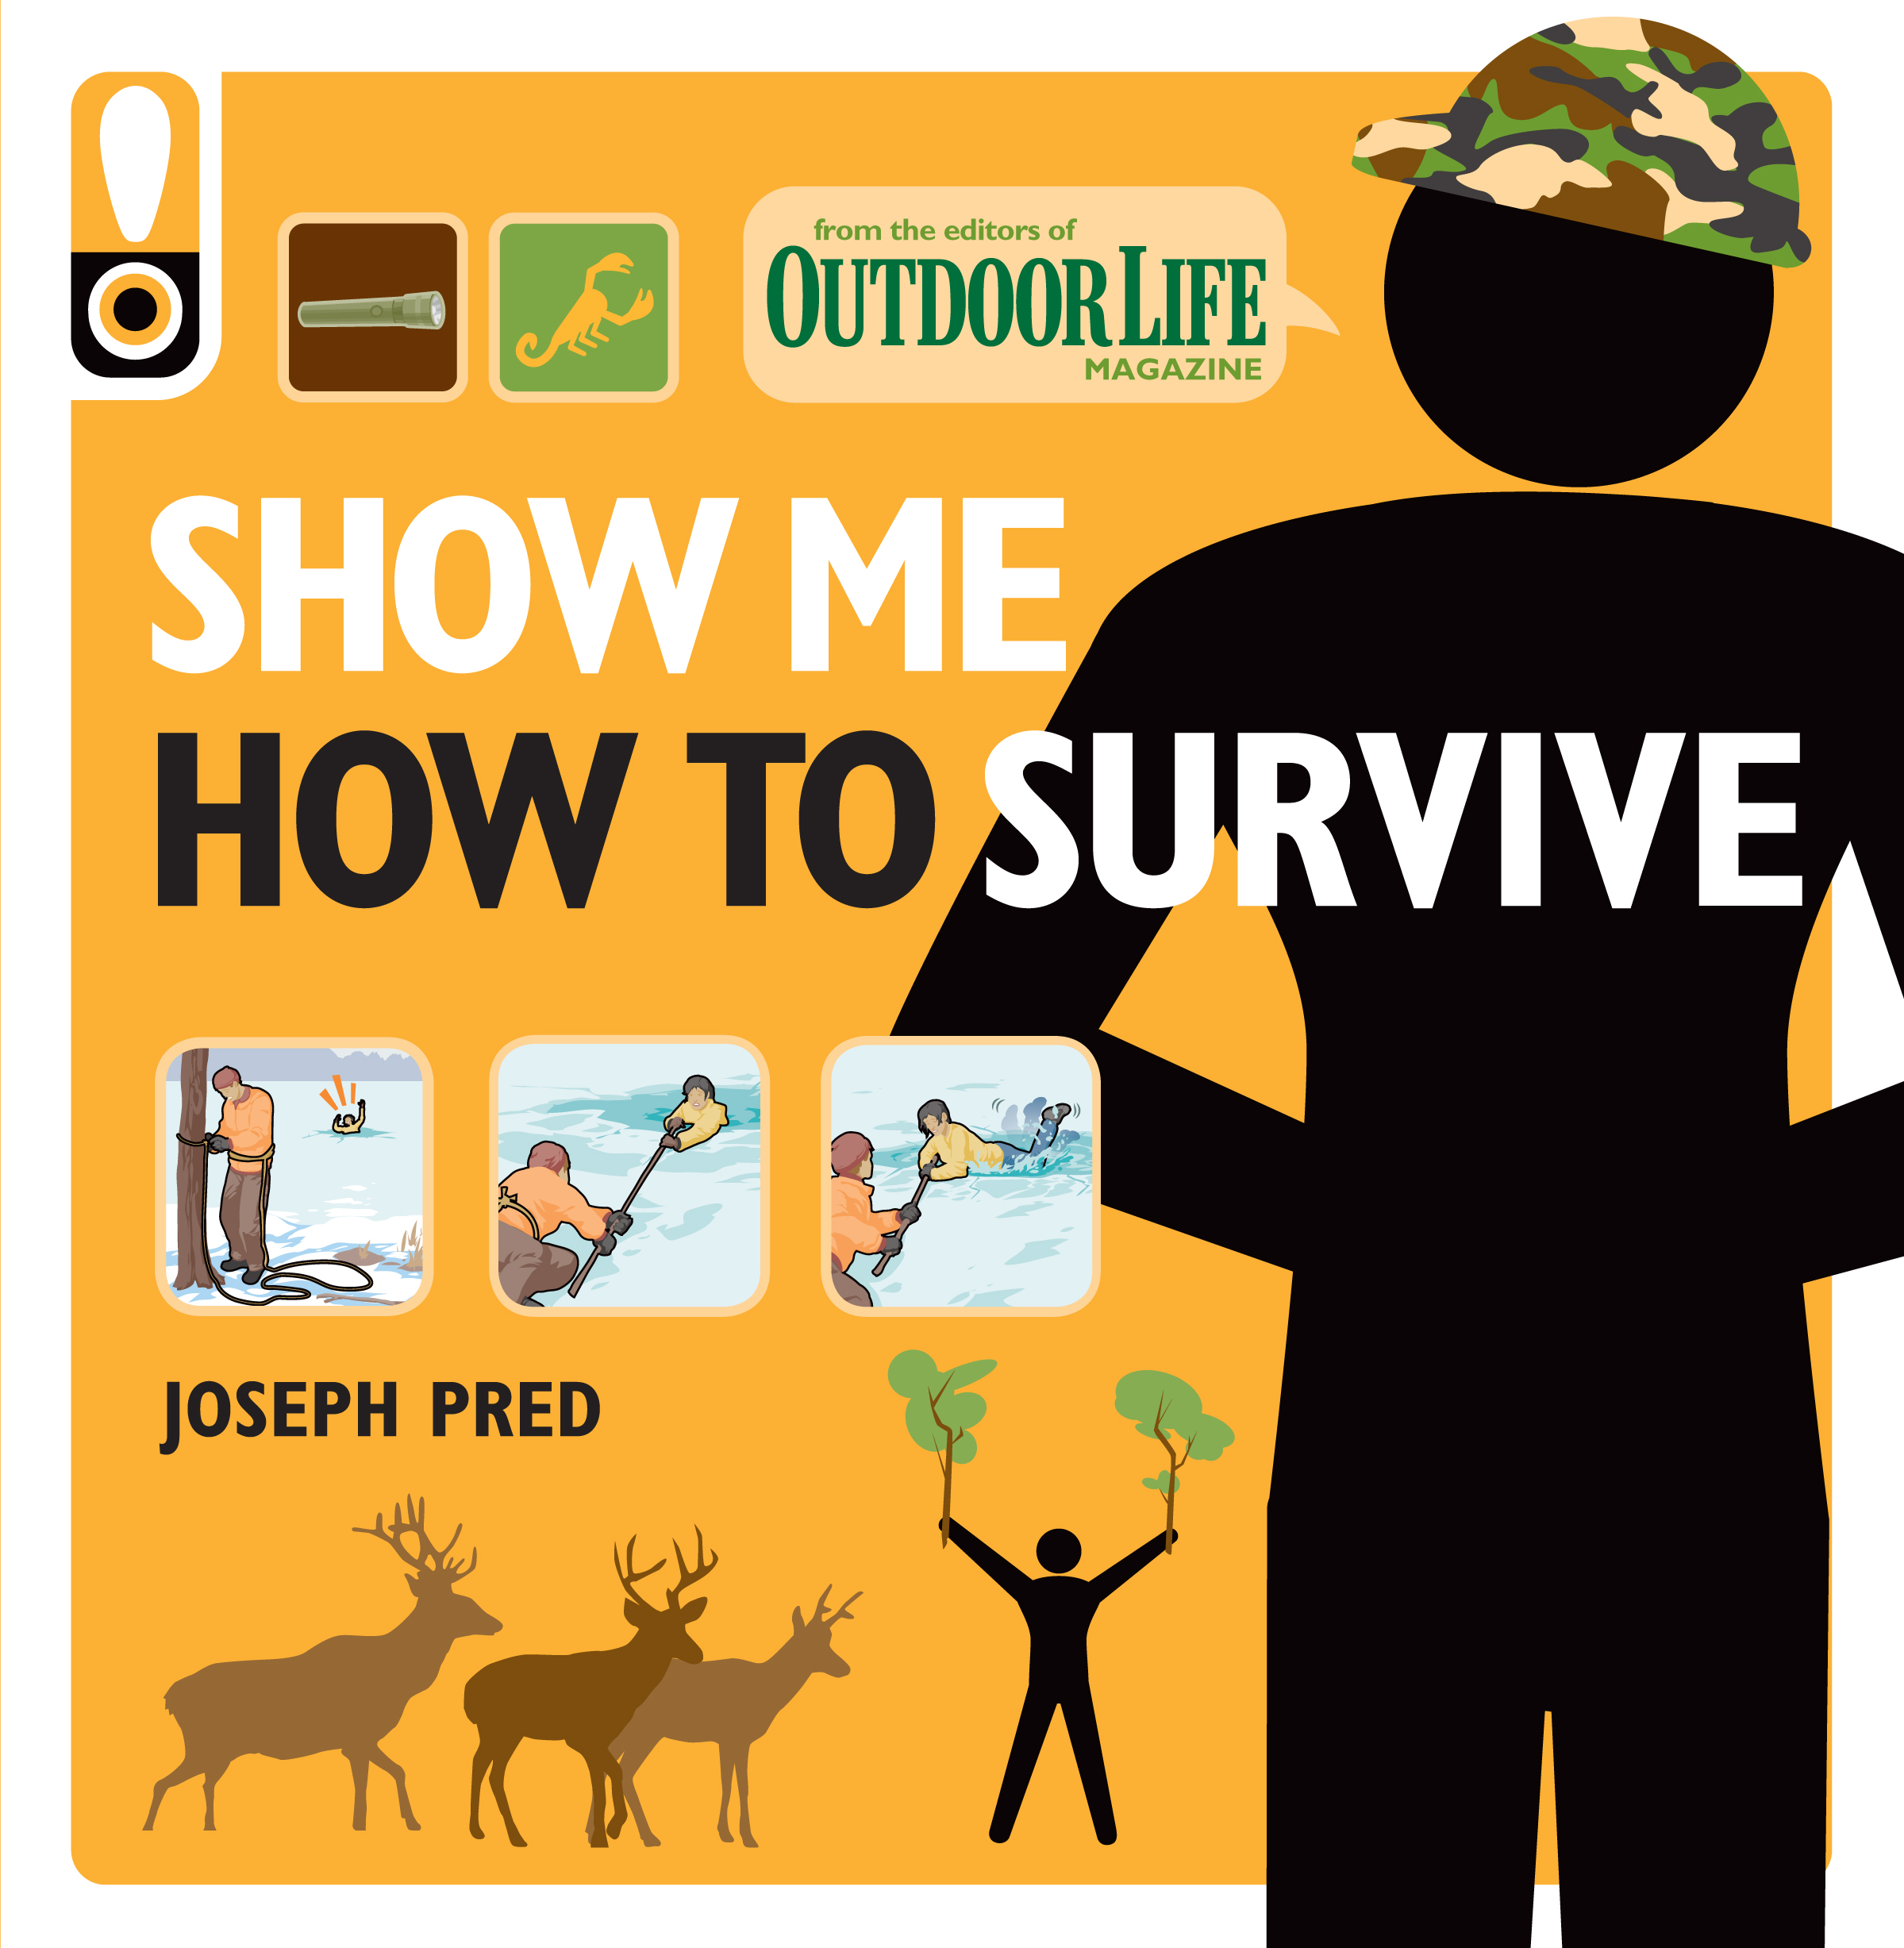 Show Me How to Survive (Outdoor Life).